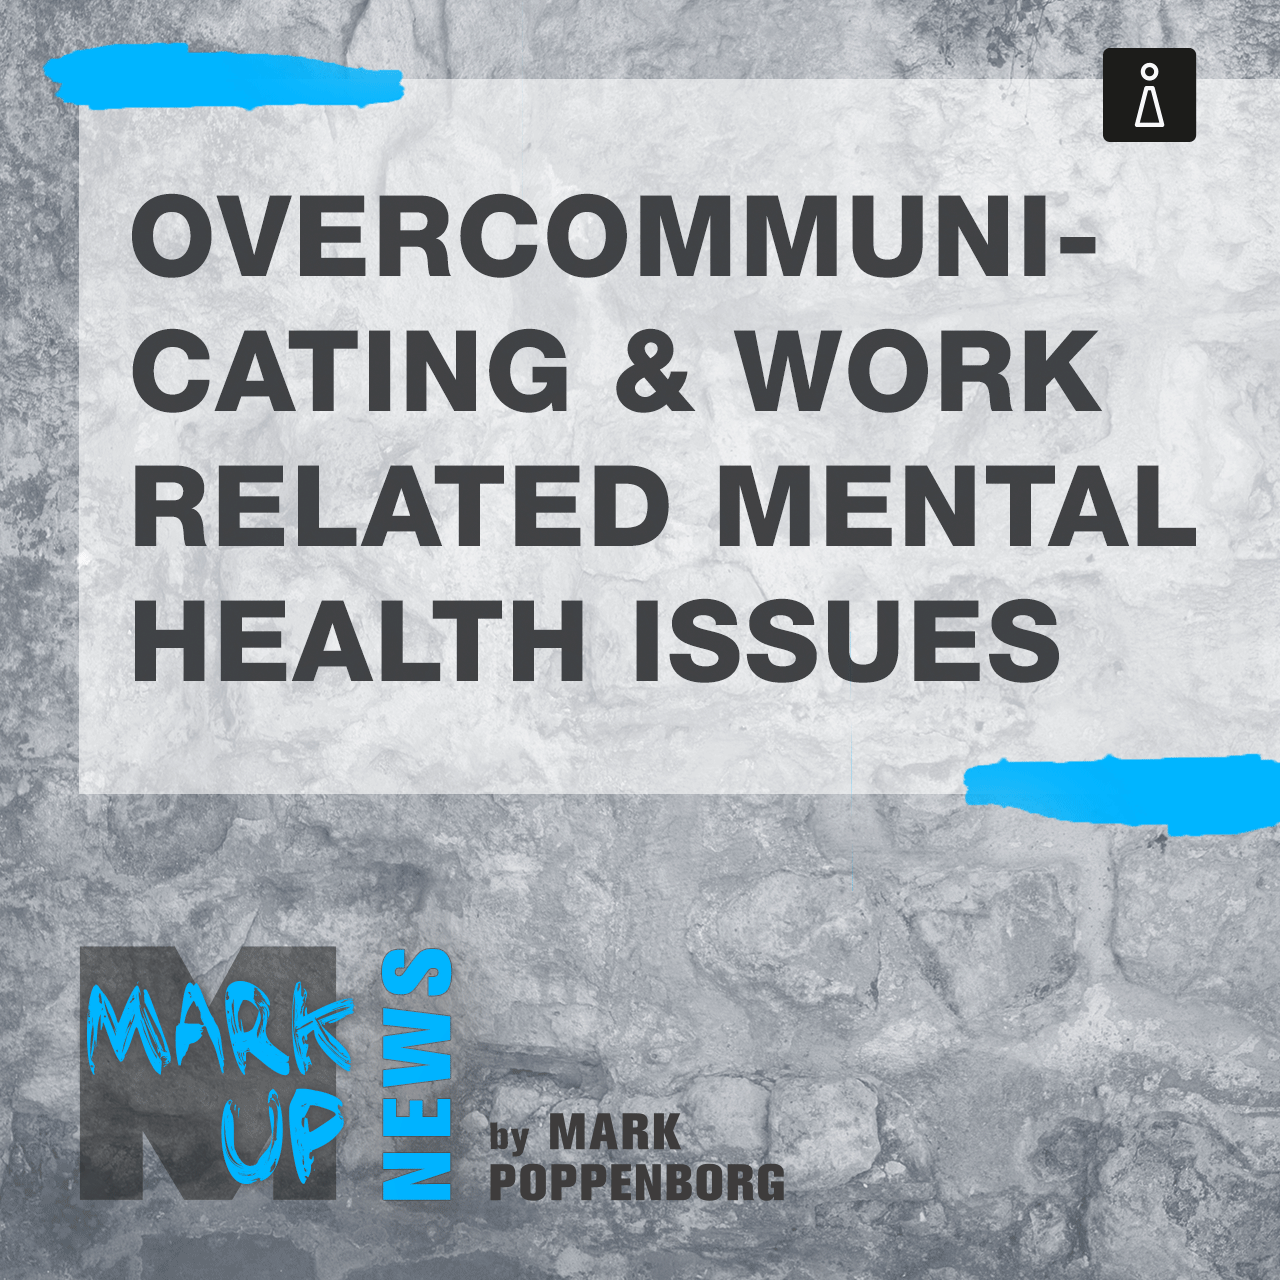 Overcommunicating and work related mental health issues